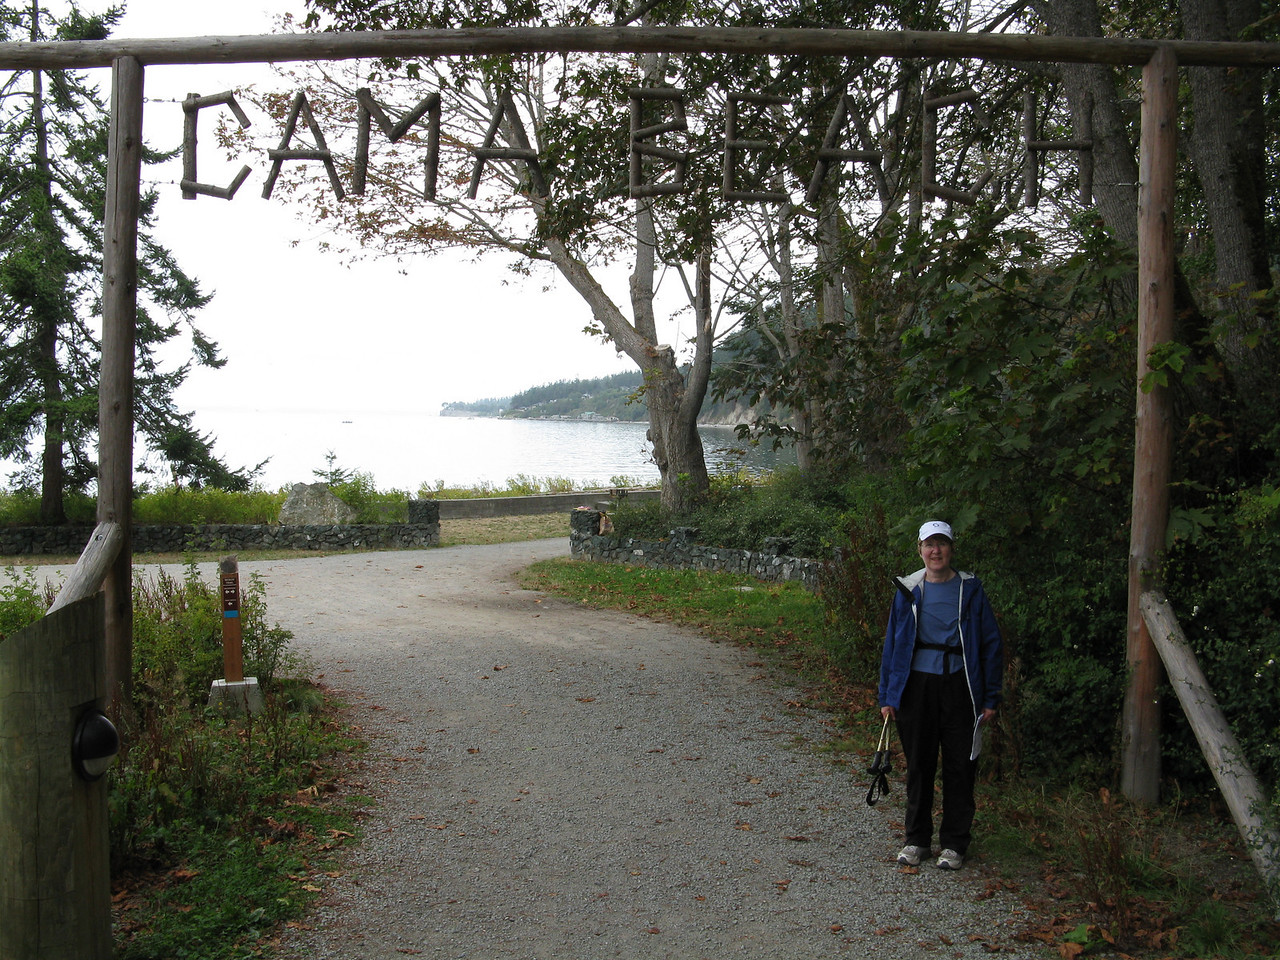 Thia picture shows the sign over the trail as we get close to the beach.  Mary.